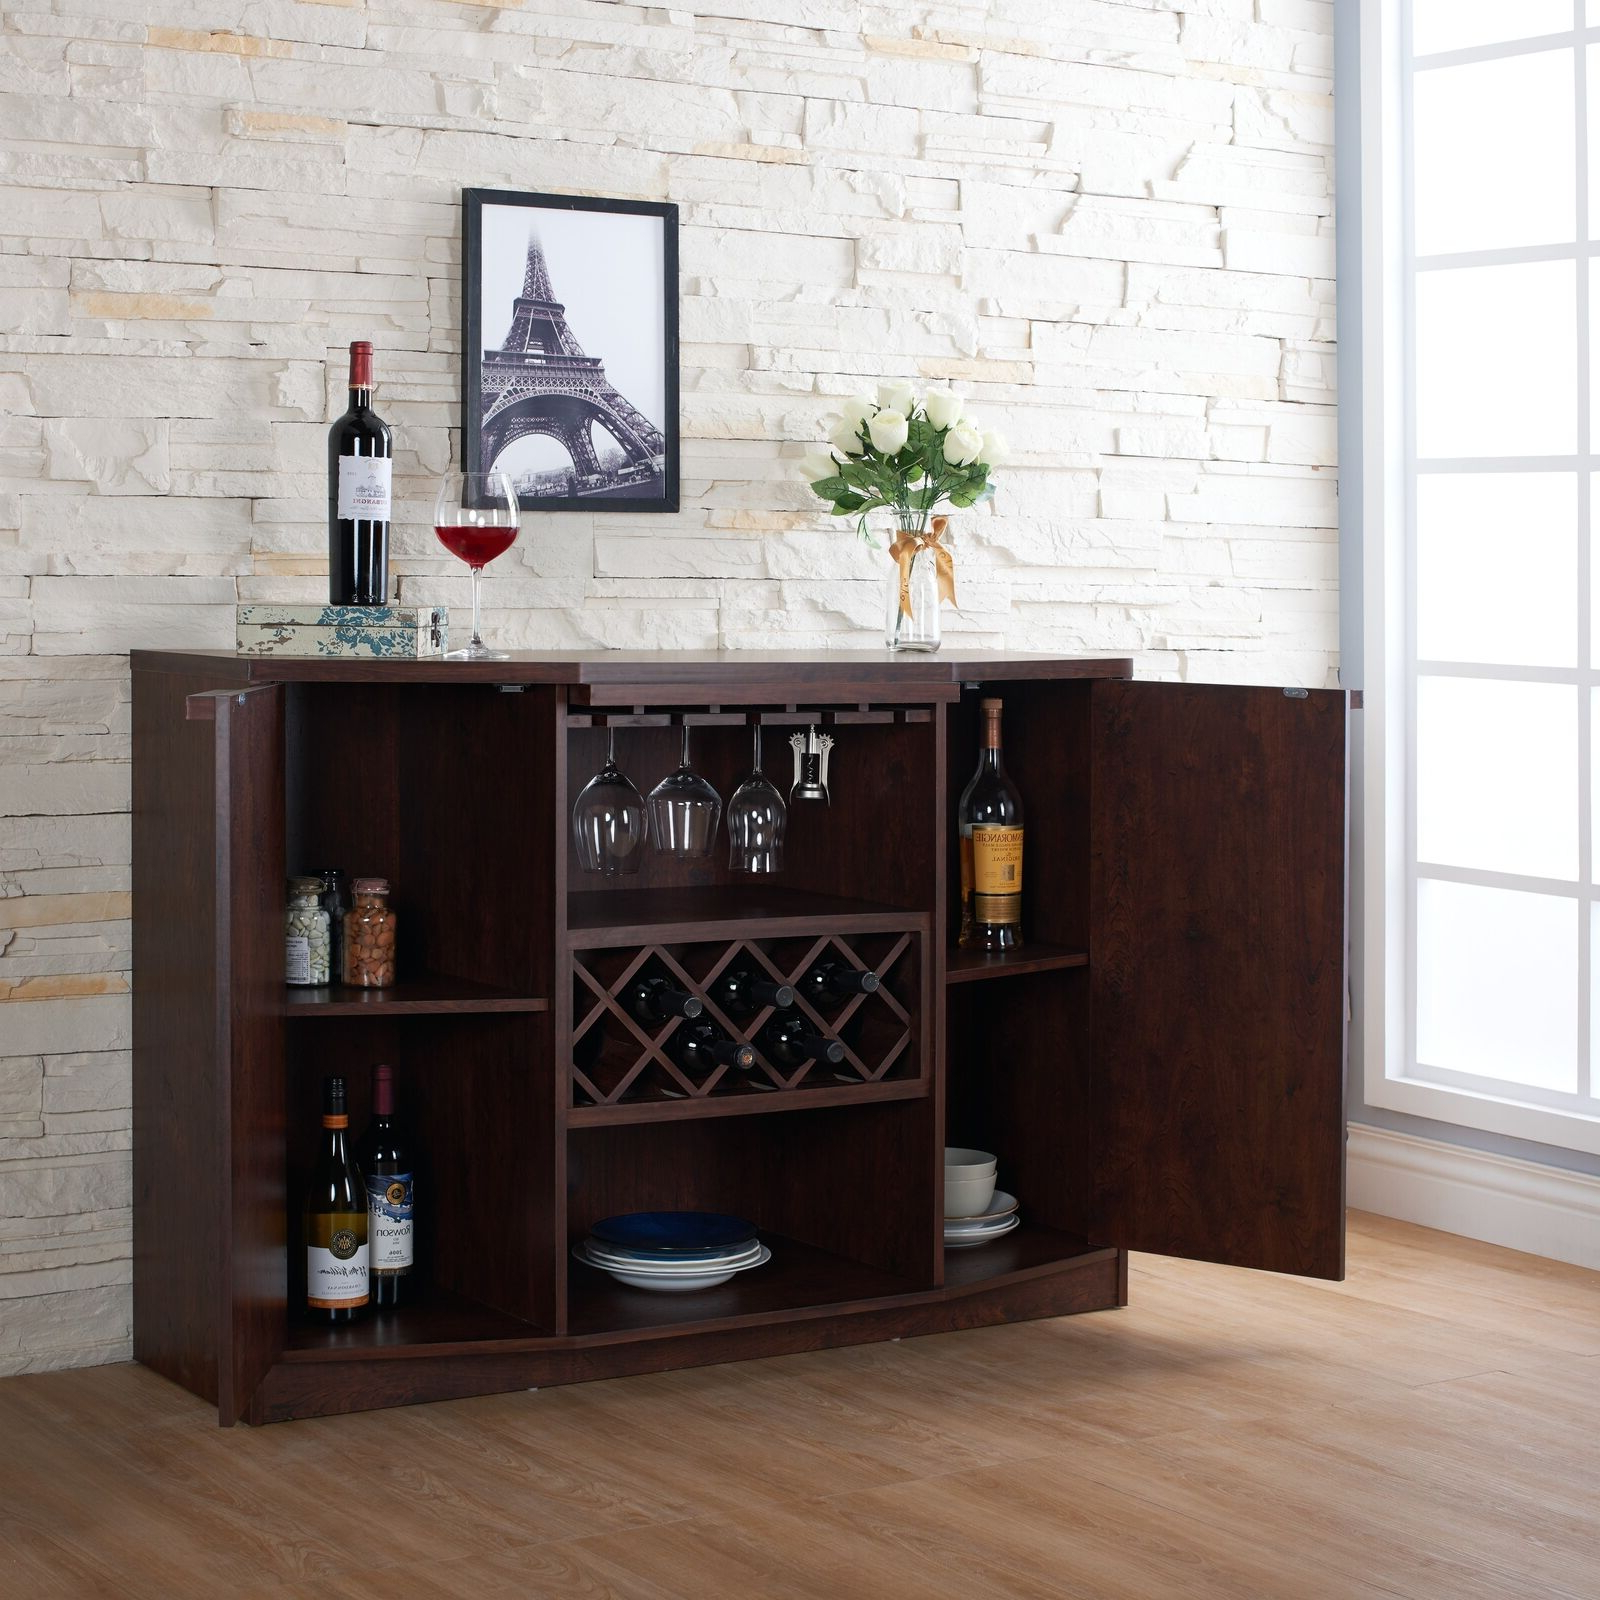 Details About Wine Bar Buffet Cabinet Bottle Rack Wood Storage Hutch  Furniture Walnut Brown With Regard To Buffets With Bottle And Glass Storage (View 6 of 20)